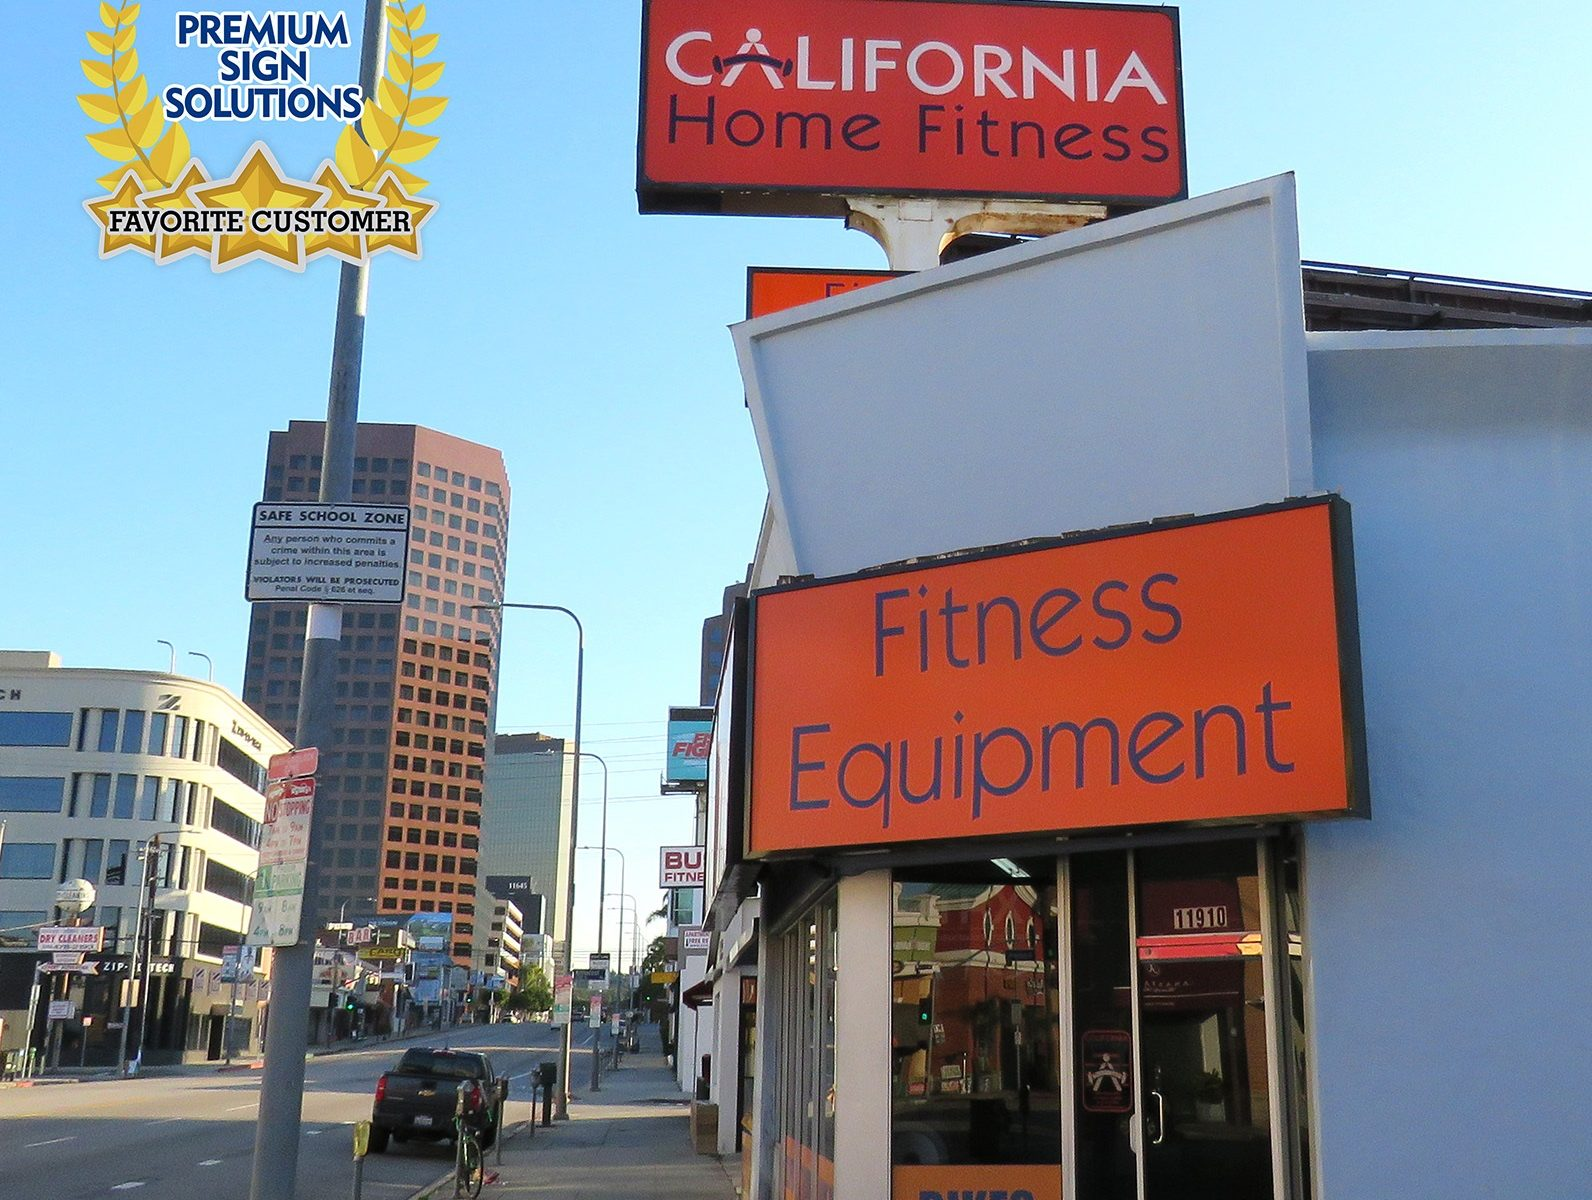 California Home Fitness is among our favorite clients. And we are happy to hear that they are in business and doing their part to help the community.